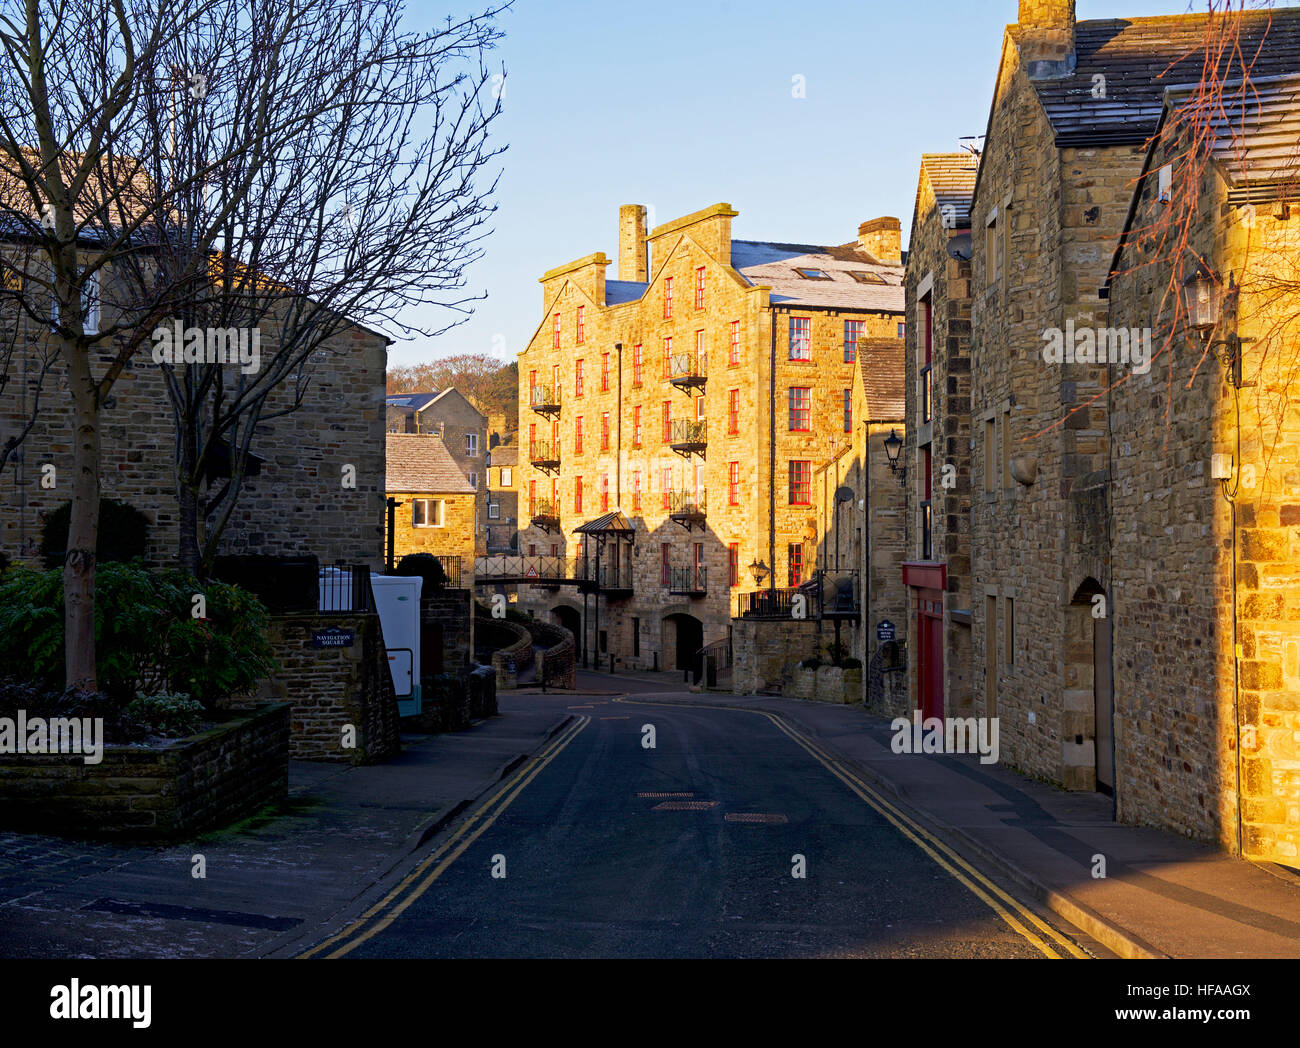 Mills turned into apartments, in Skipton, North Yorkshire, England UK - Stock Image